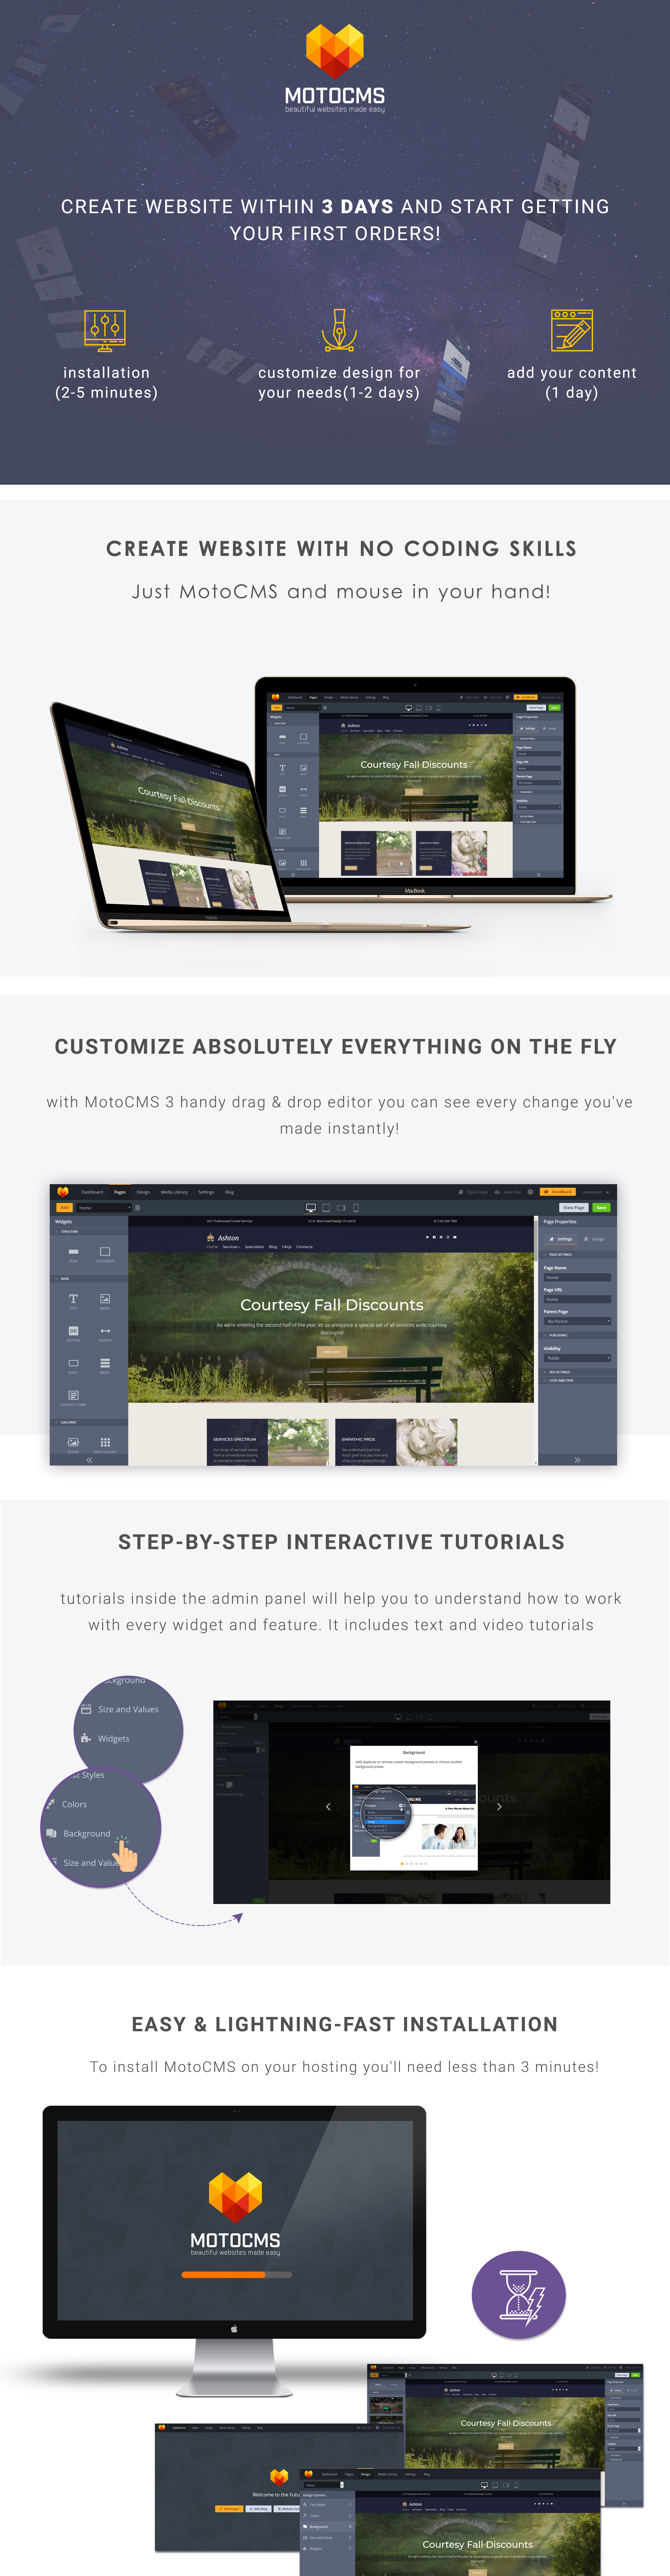 Funeral & Cemetery Services Moto CMS 3 Template